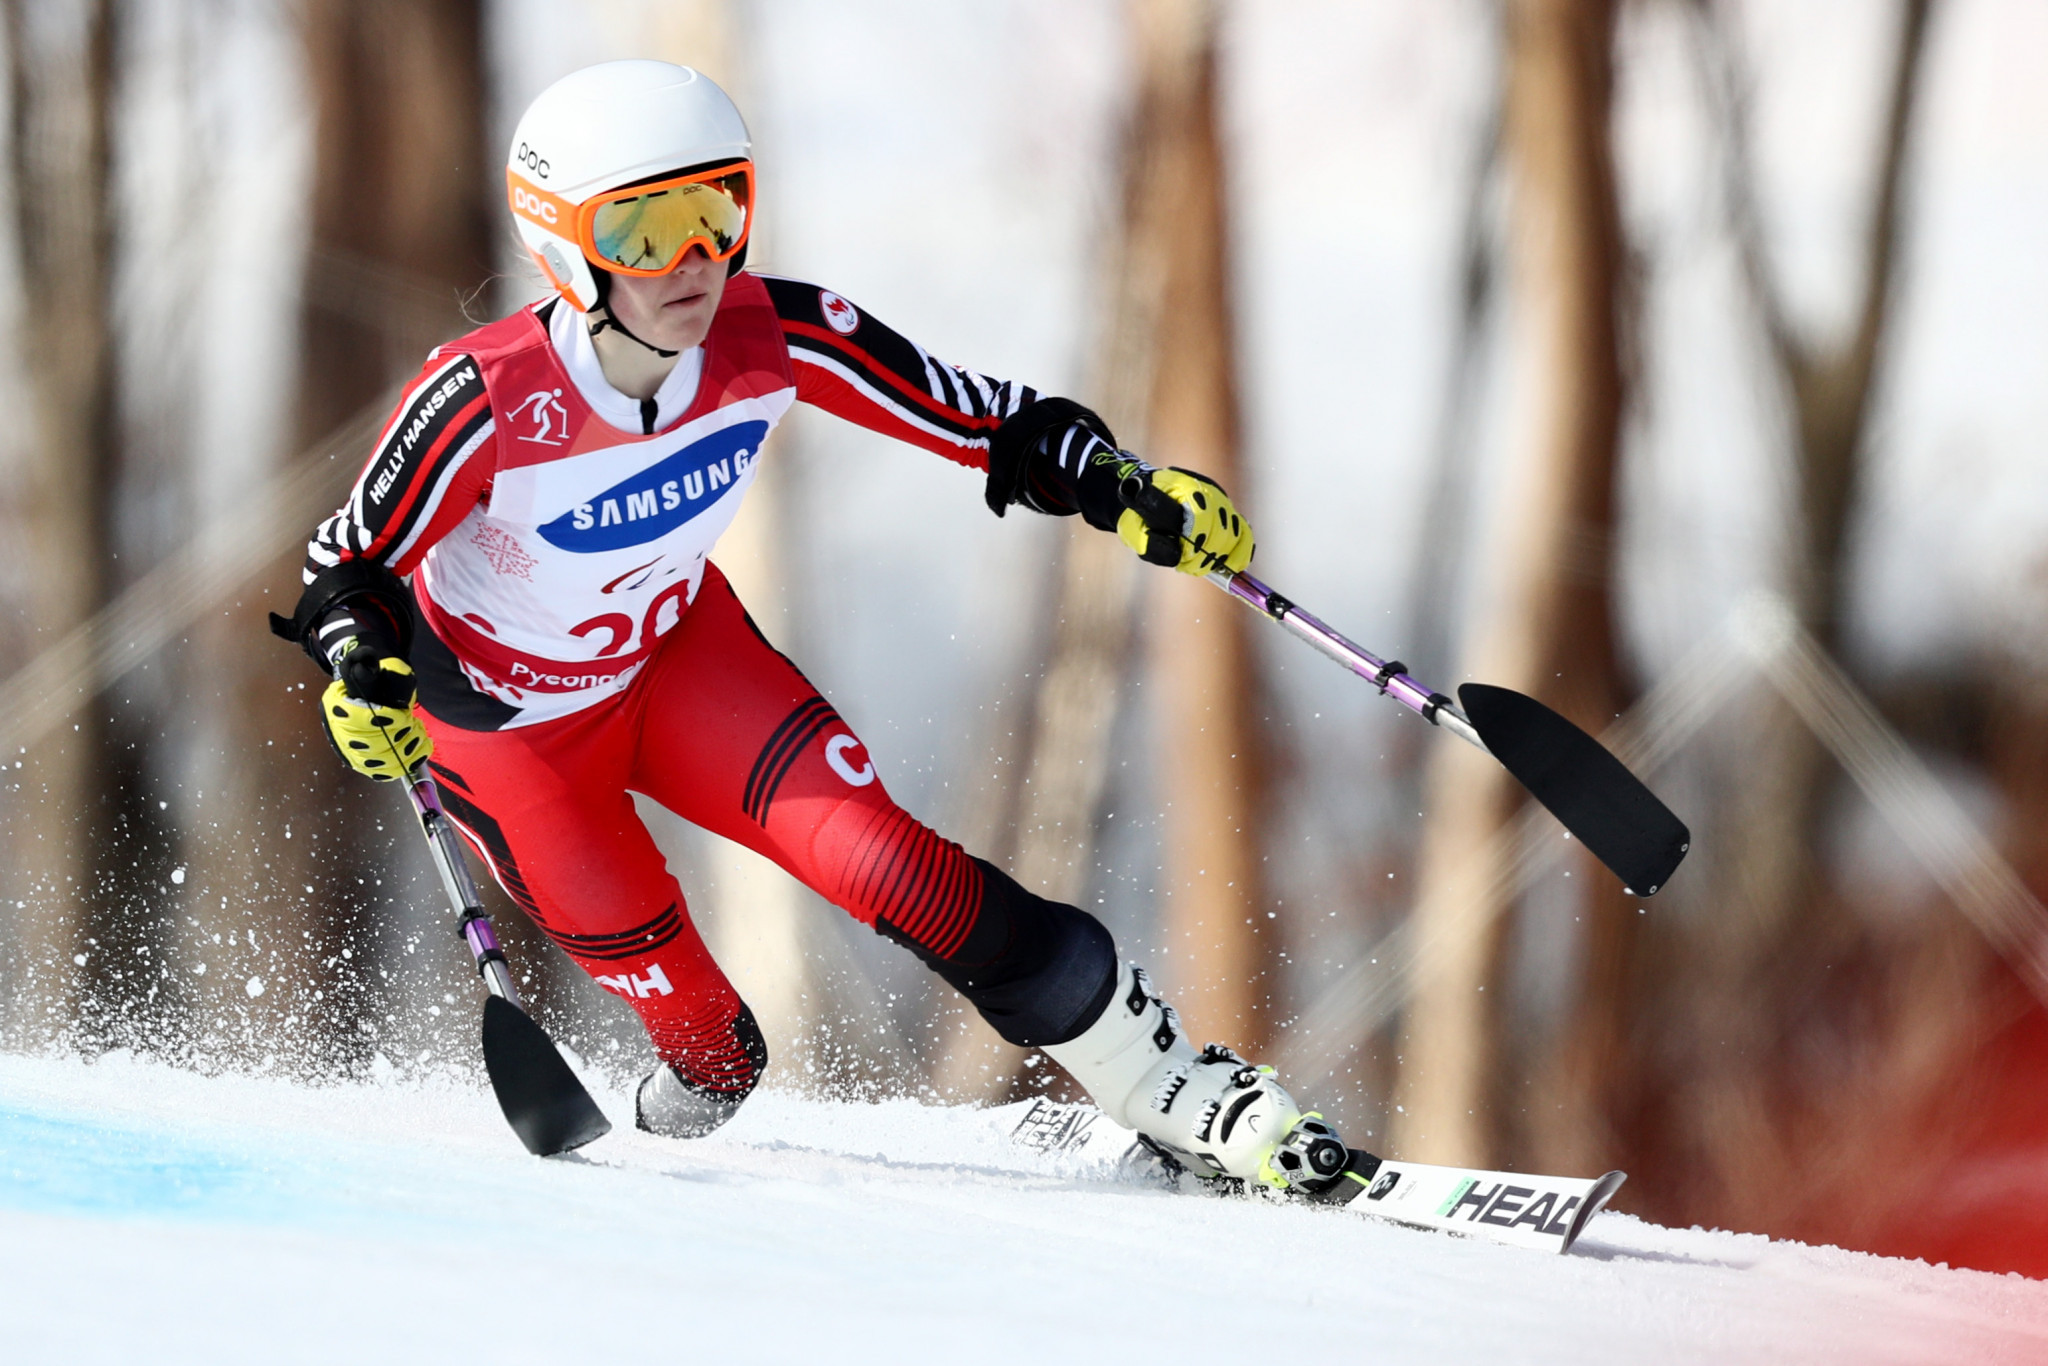 Canada's Turgeon secures first-ever World Para Alpine Skiing World Cup podium finish with victory in Zagreb